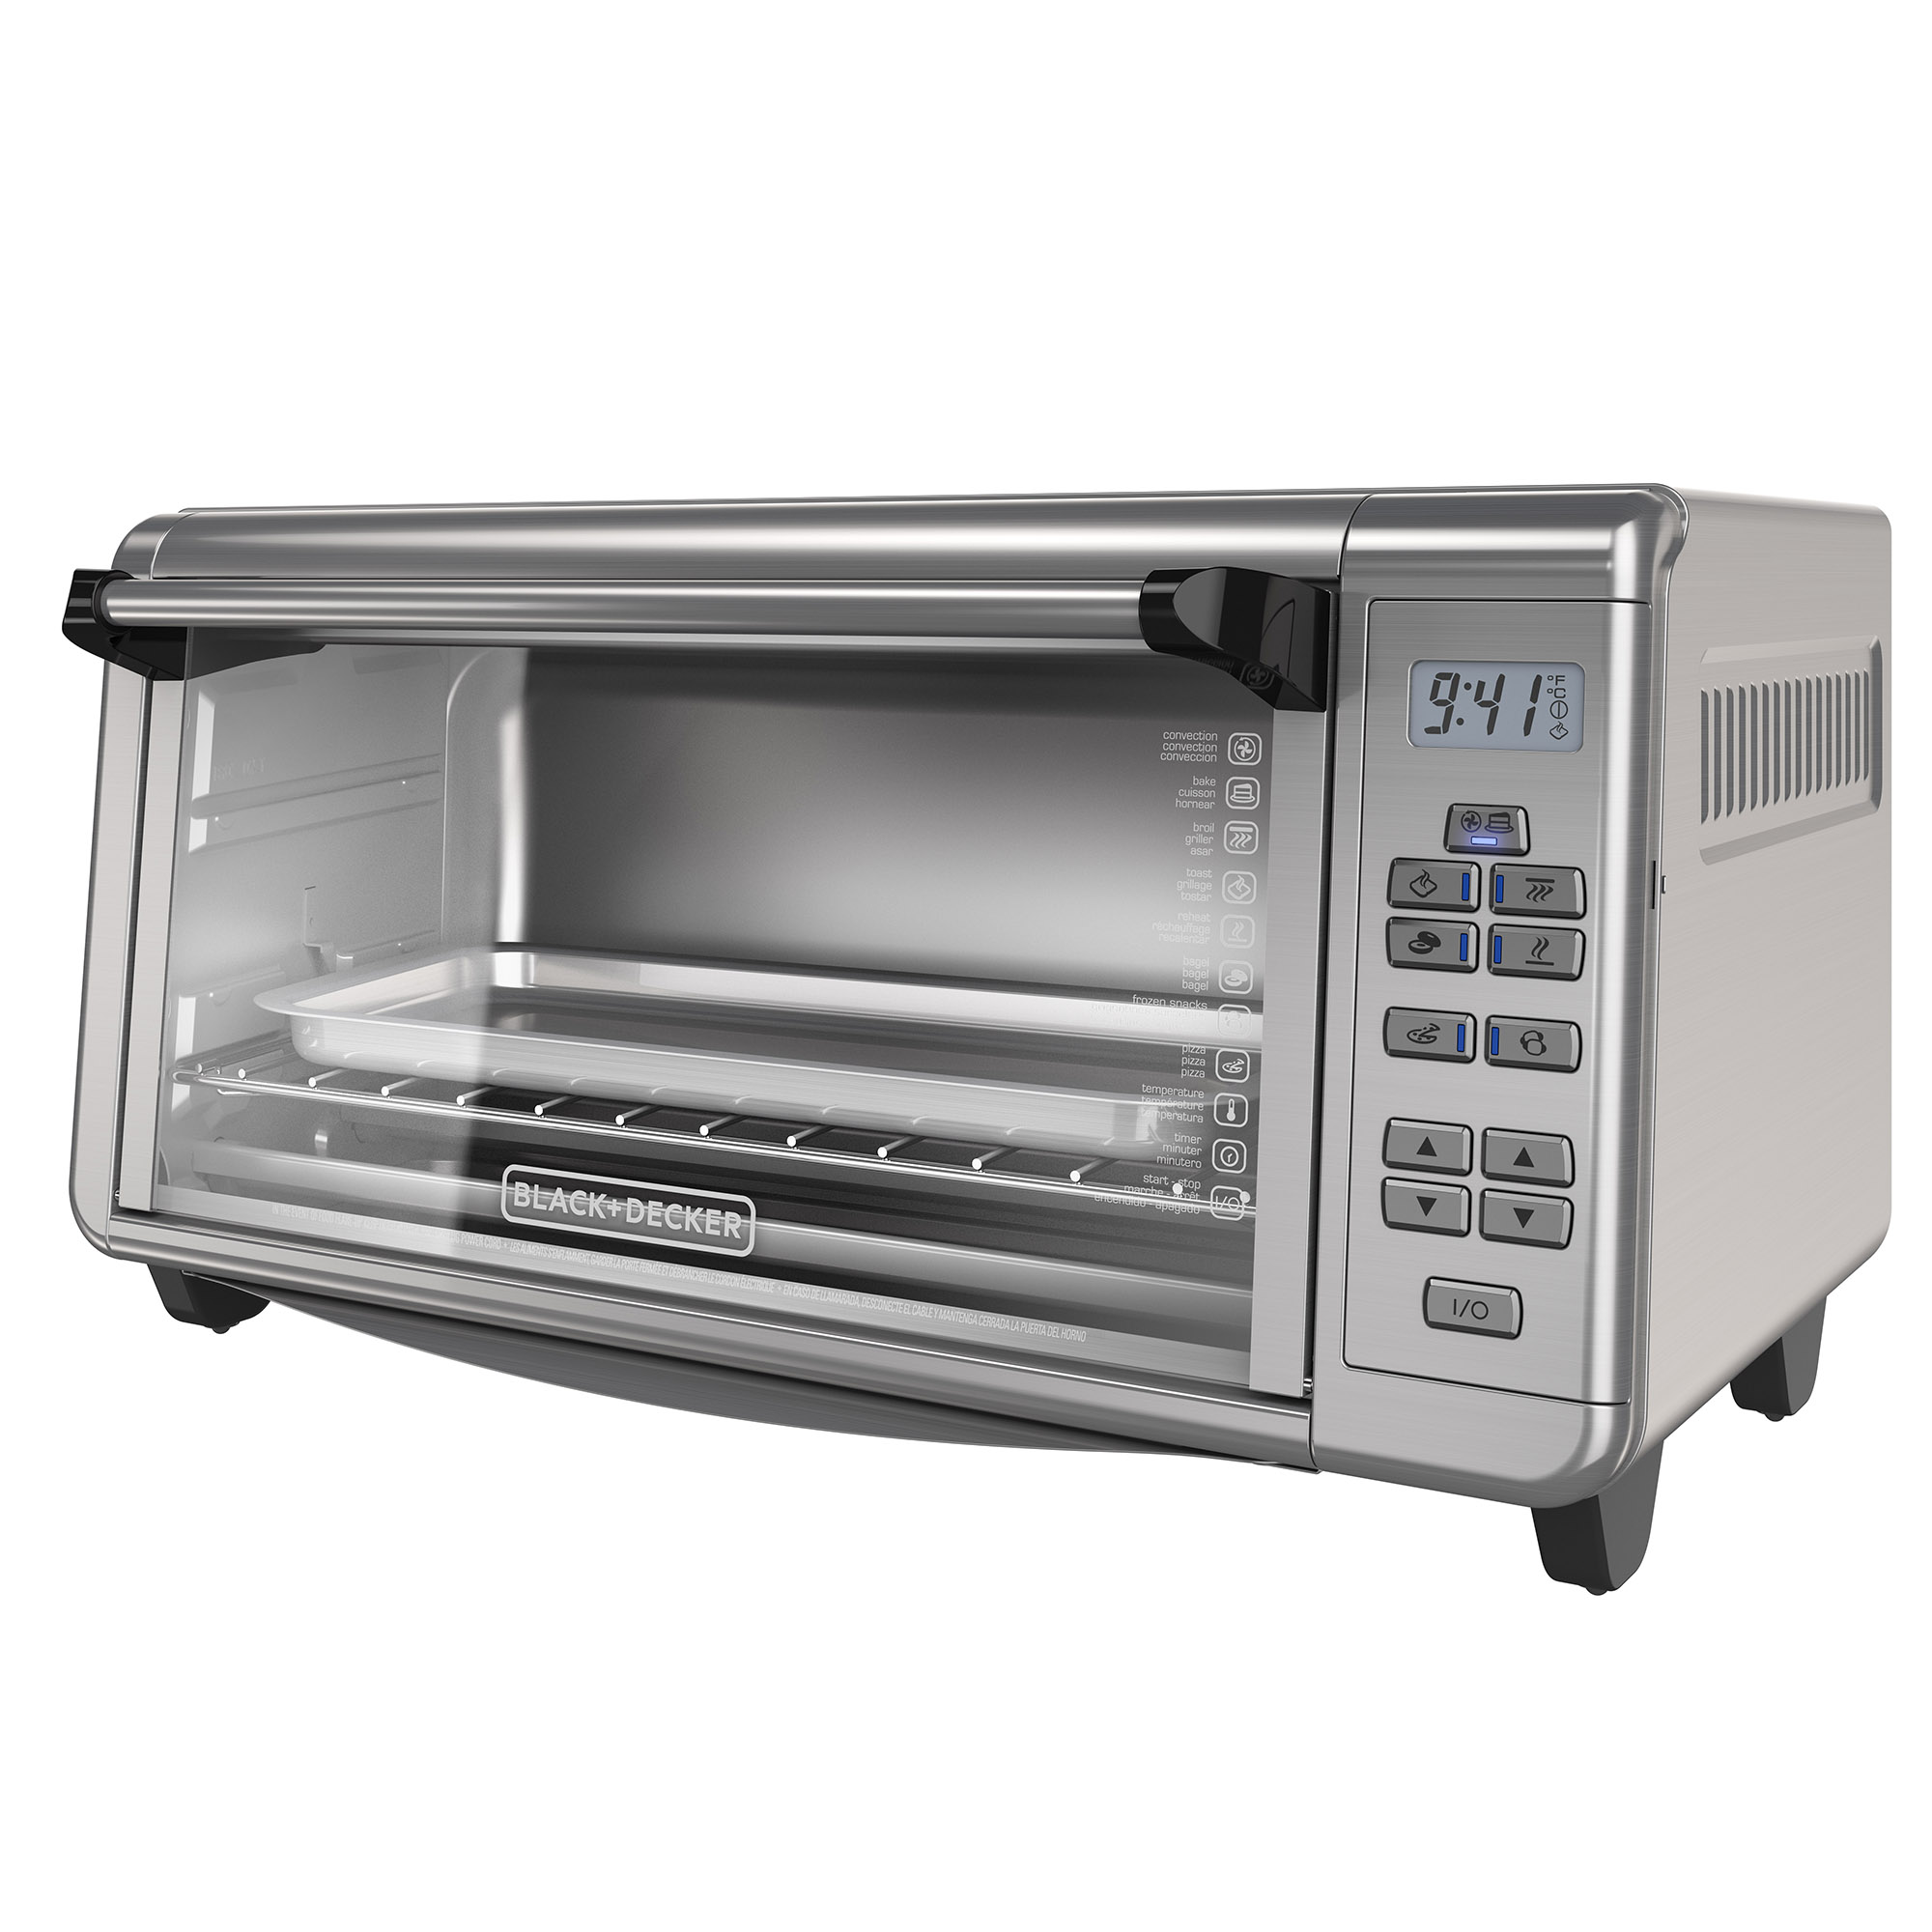 Black & Decker Digital Stainless Steel Extra-Wide 8 Slice Convection Countertop Toaster Oven, 1 Each